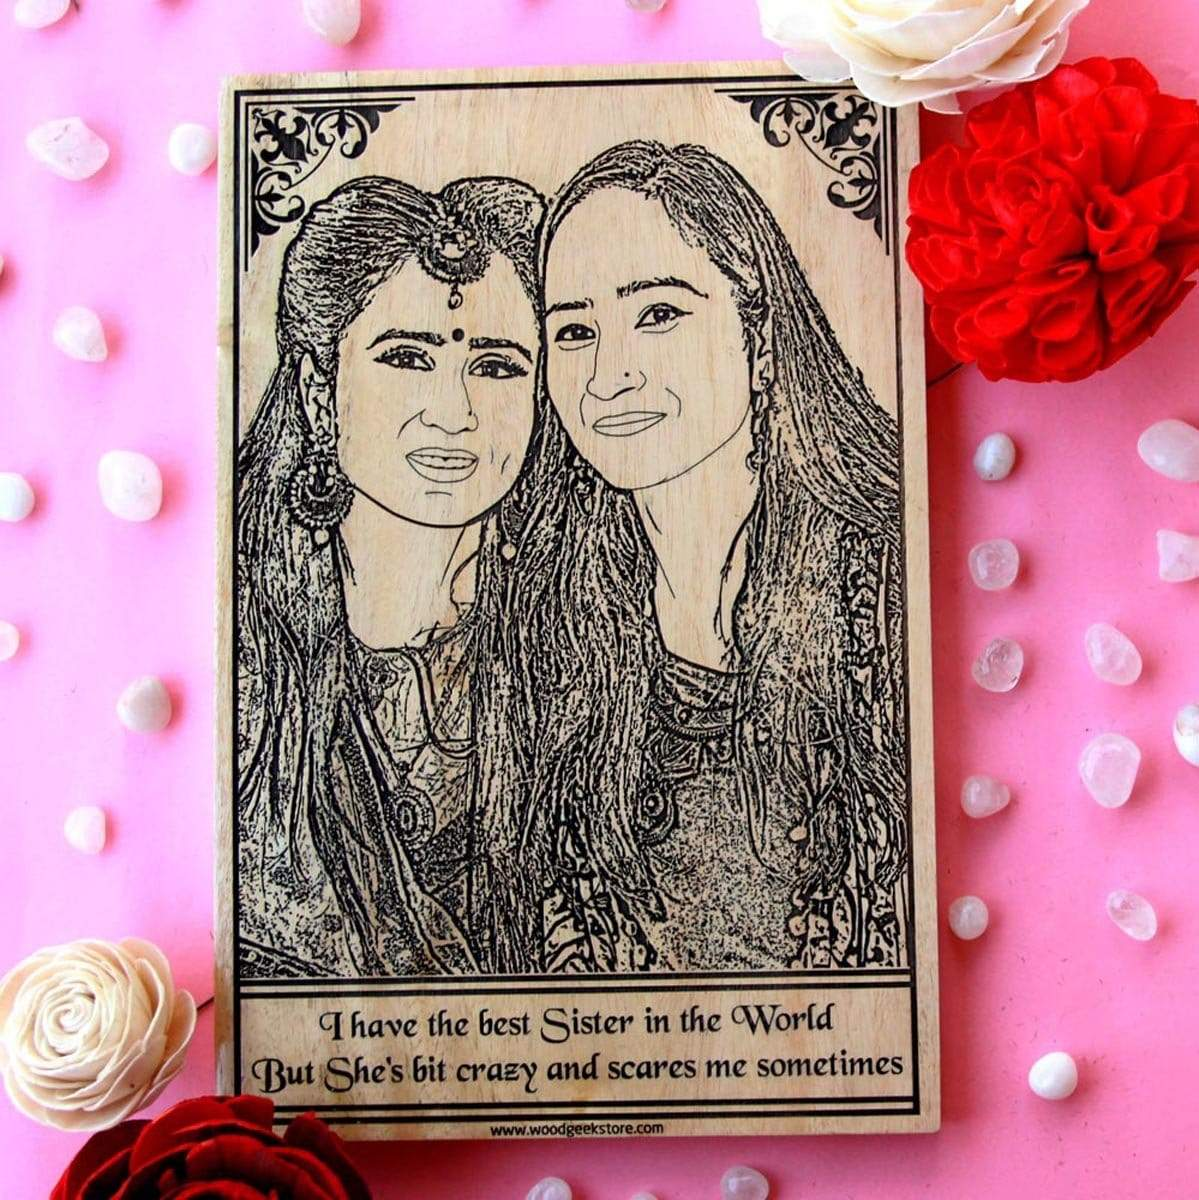 I have the best sister in the world. But she's a bit crazy and scares me sometimes.  Looking for Rakhi gifts for sister or birthday gifts for sister? This wood engraved photo is the best gift for her.